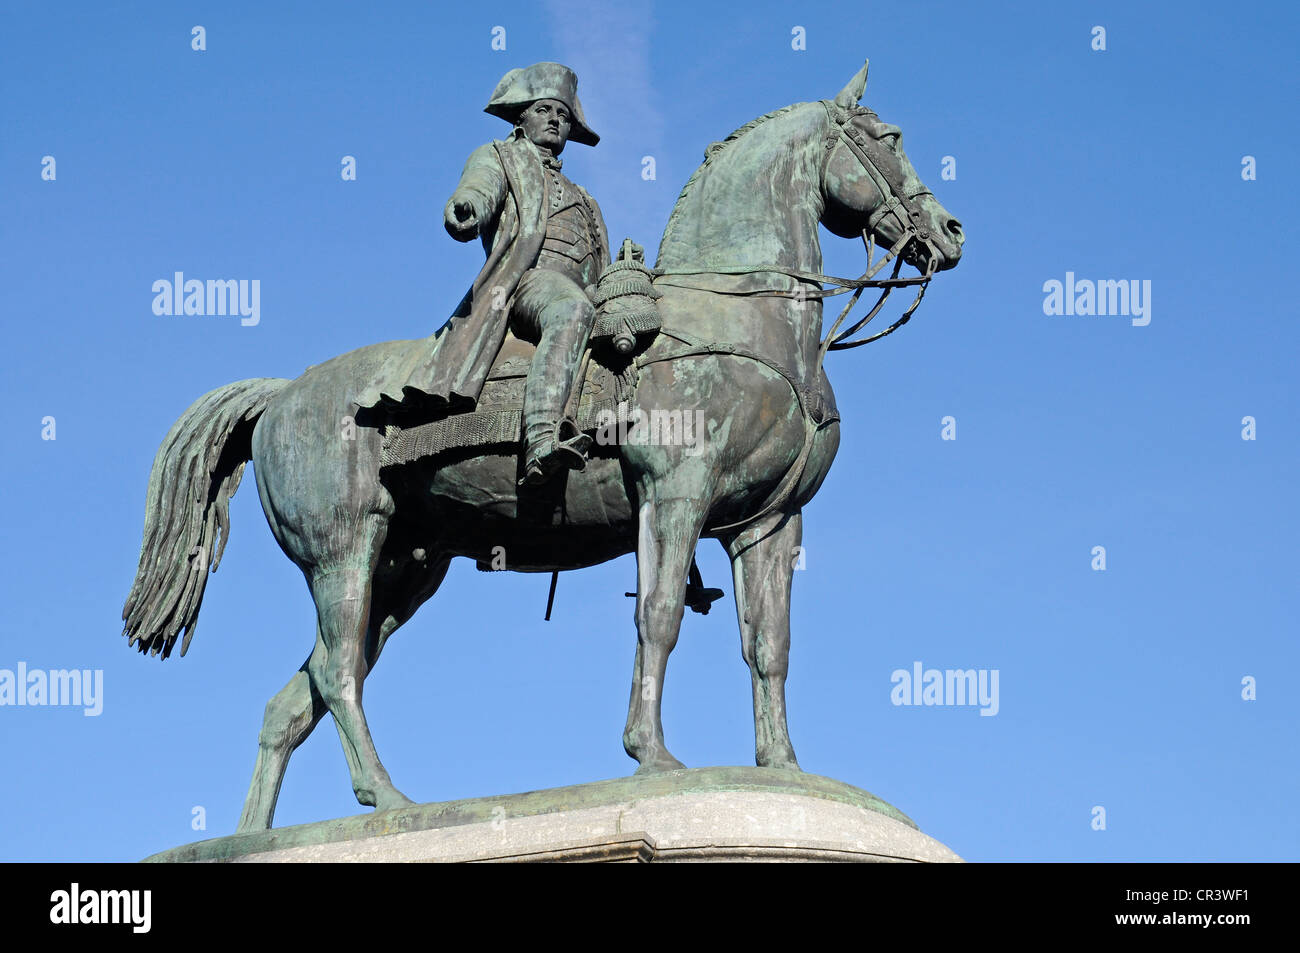 place napoleon equestrian statue monument square la roche sur stock photo royalty free. Black Bedroom Furniture Sets. Home Design Ideas